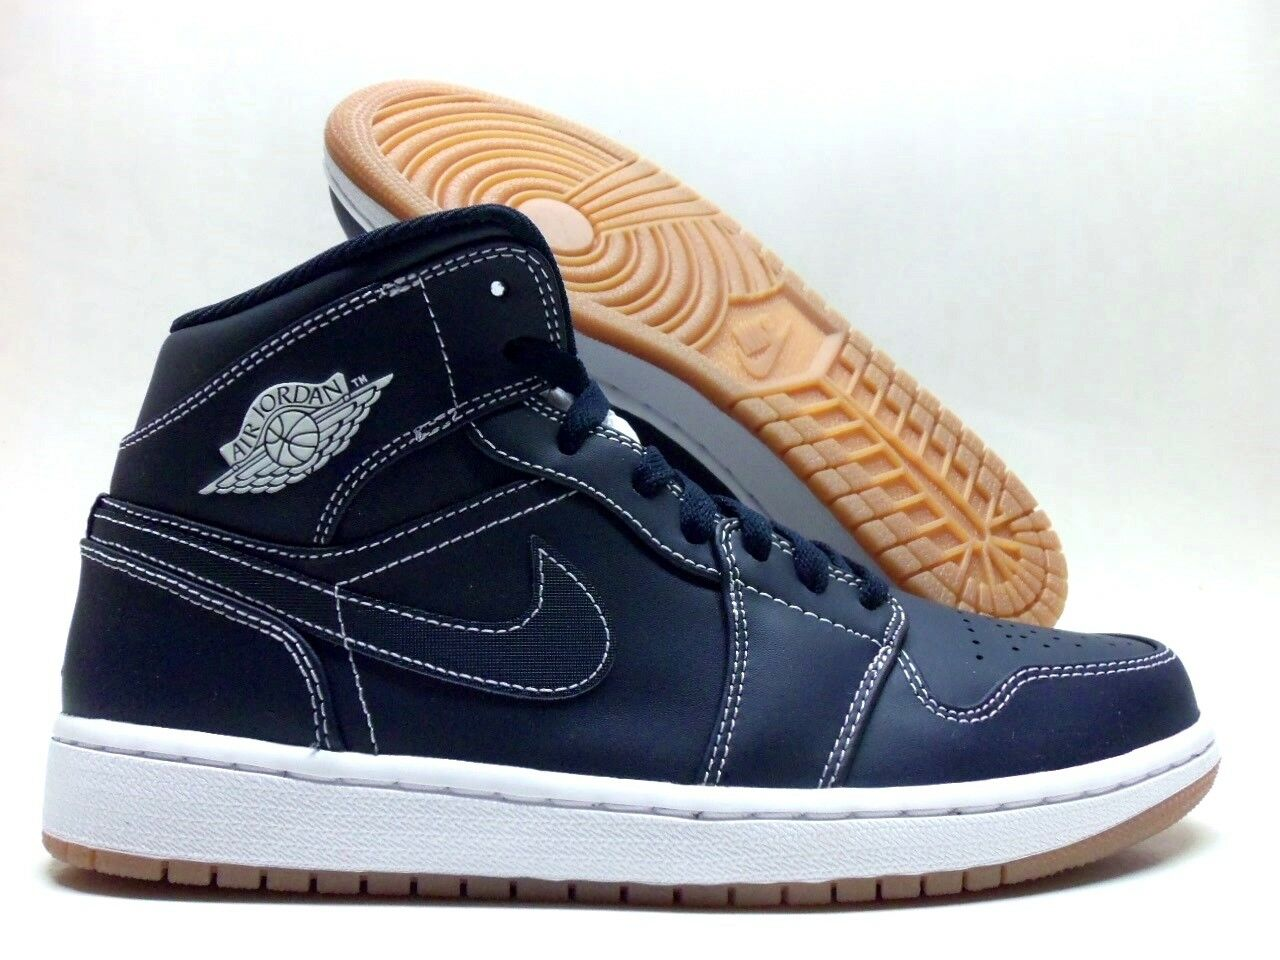 NIKE AIR JORDAN 1 MID RE2PECT OBSIDIAN/WHITE-GUM SIZE MEN'S 8.5 [AH6342-402]